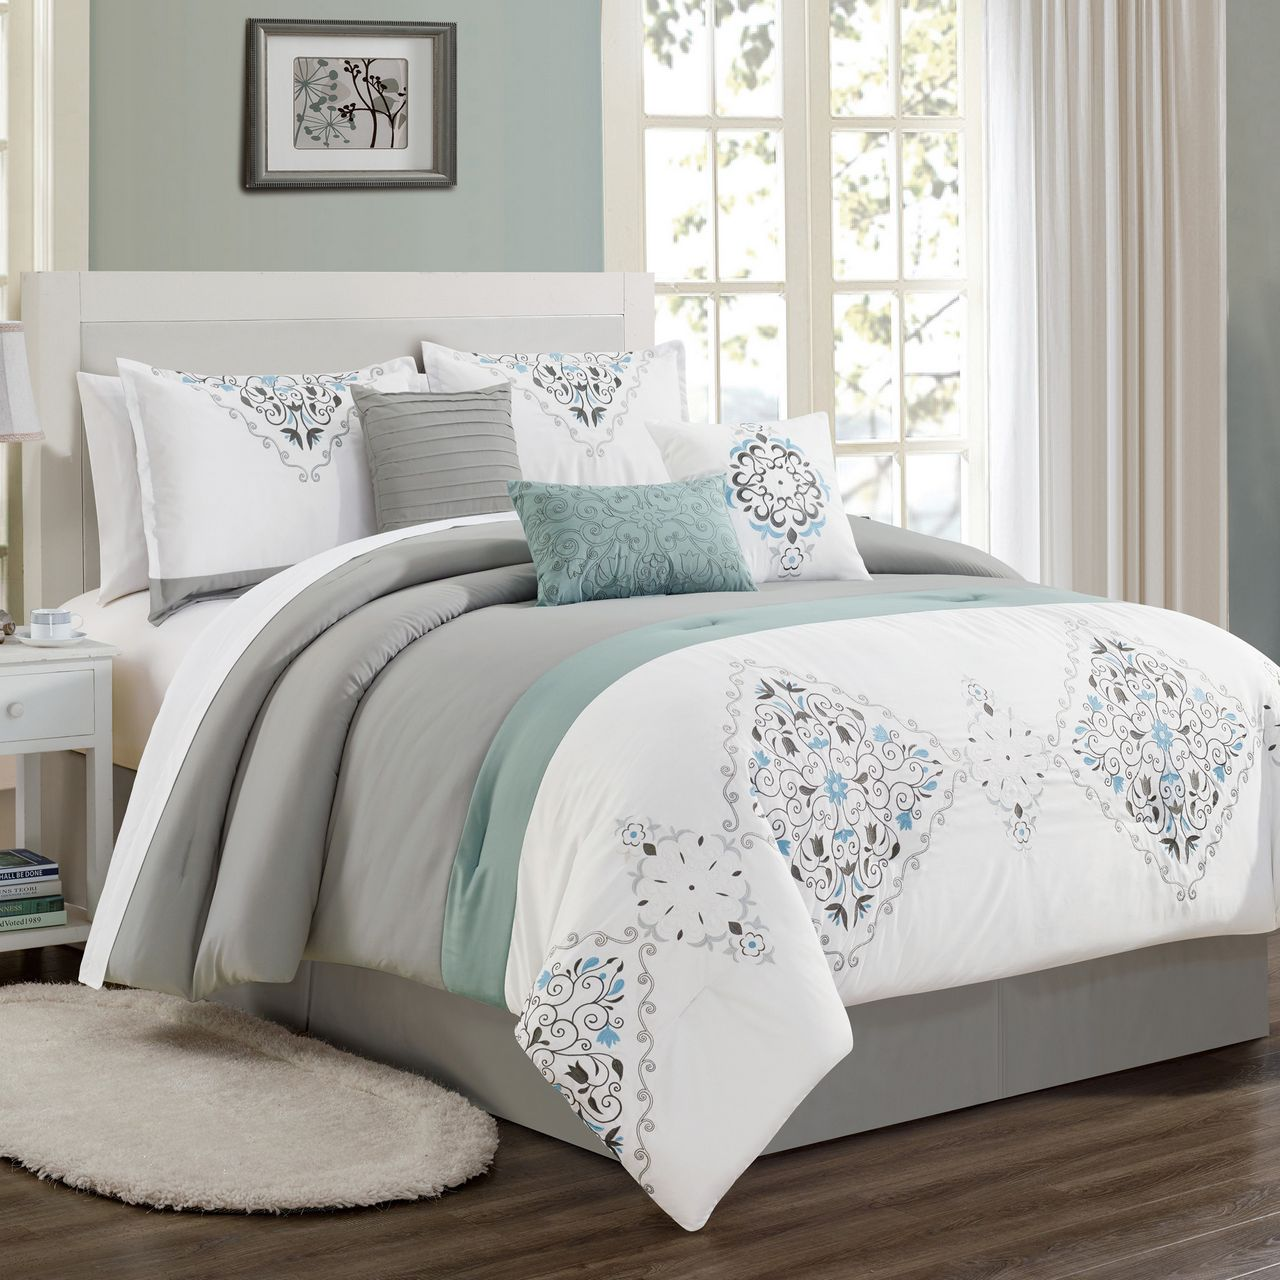 11 Piece Even Gray/White/Blue Bed in a Bag Set